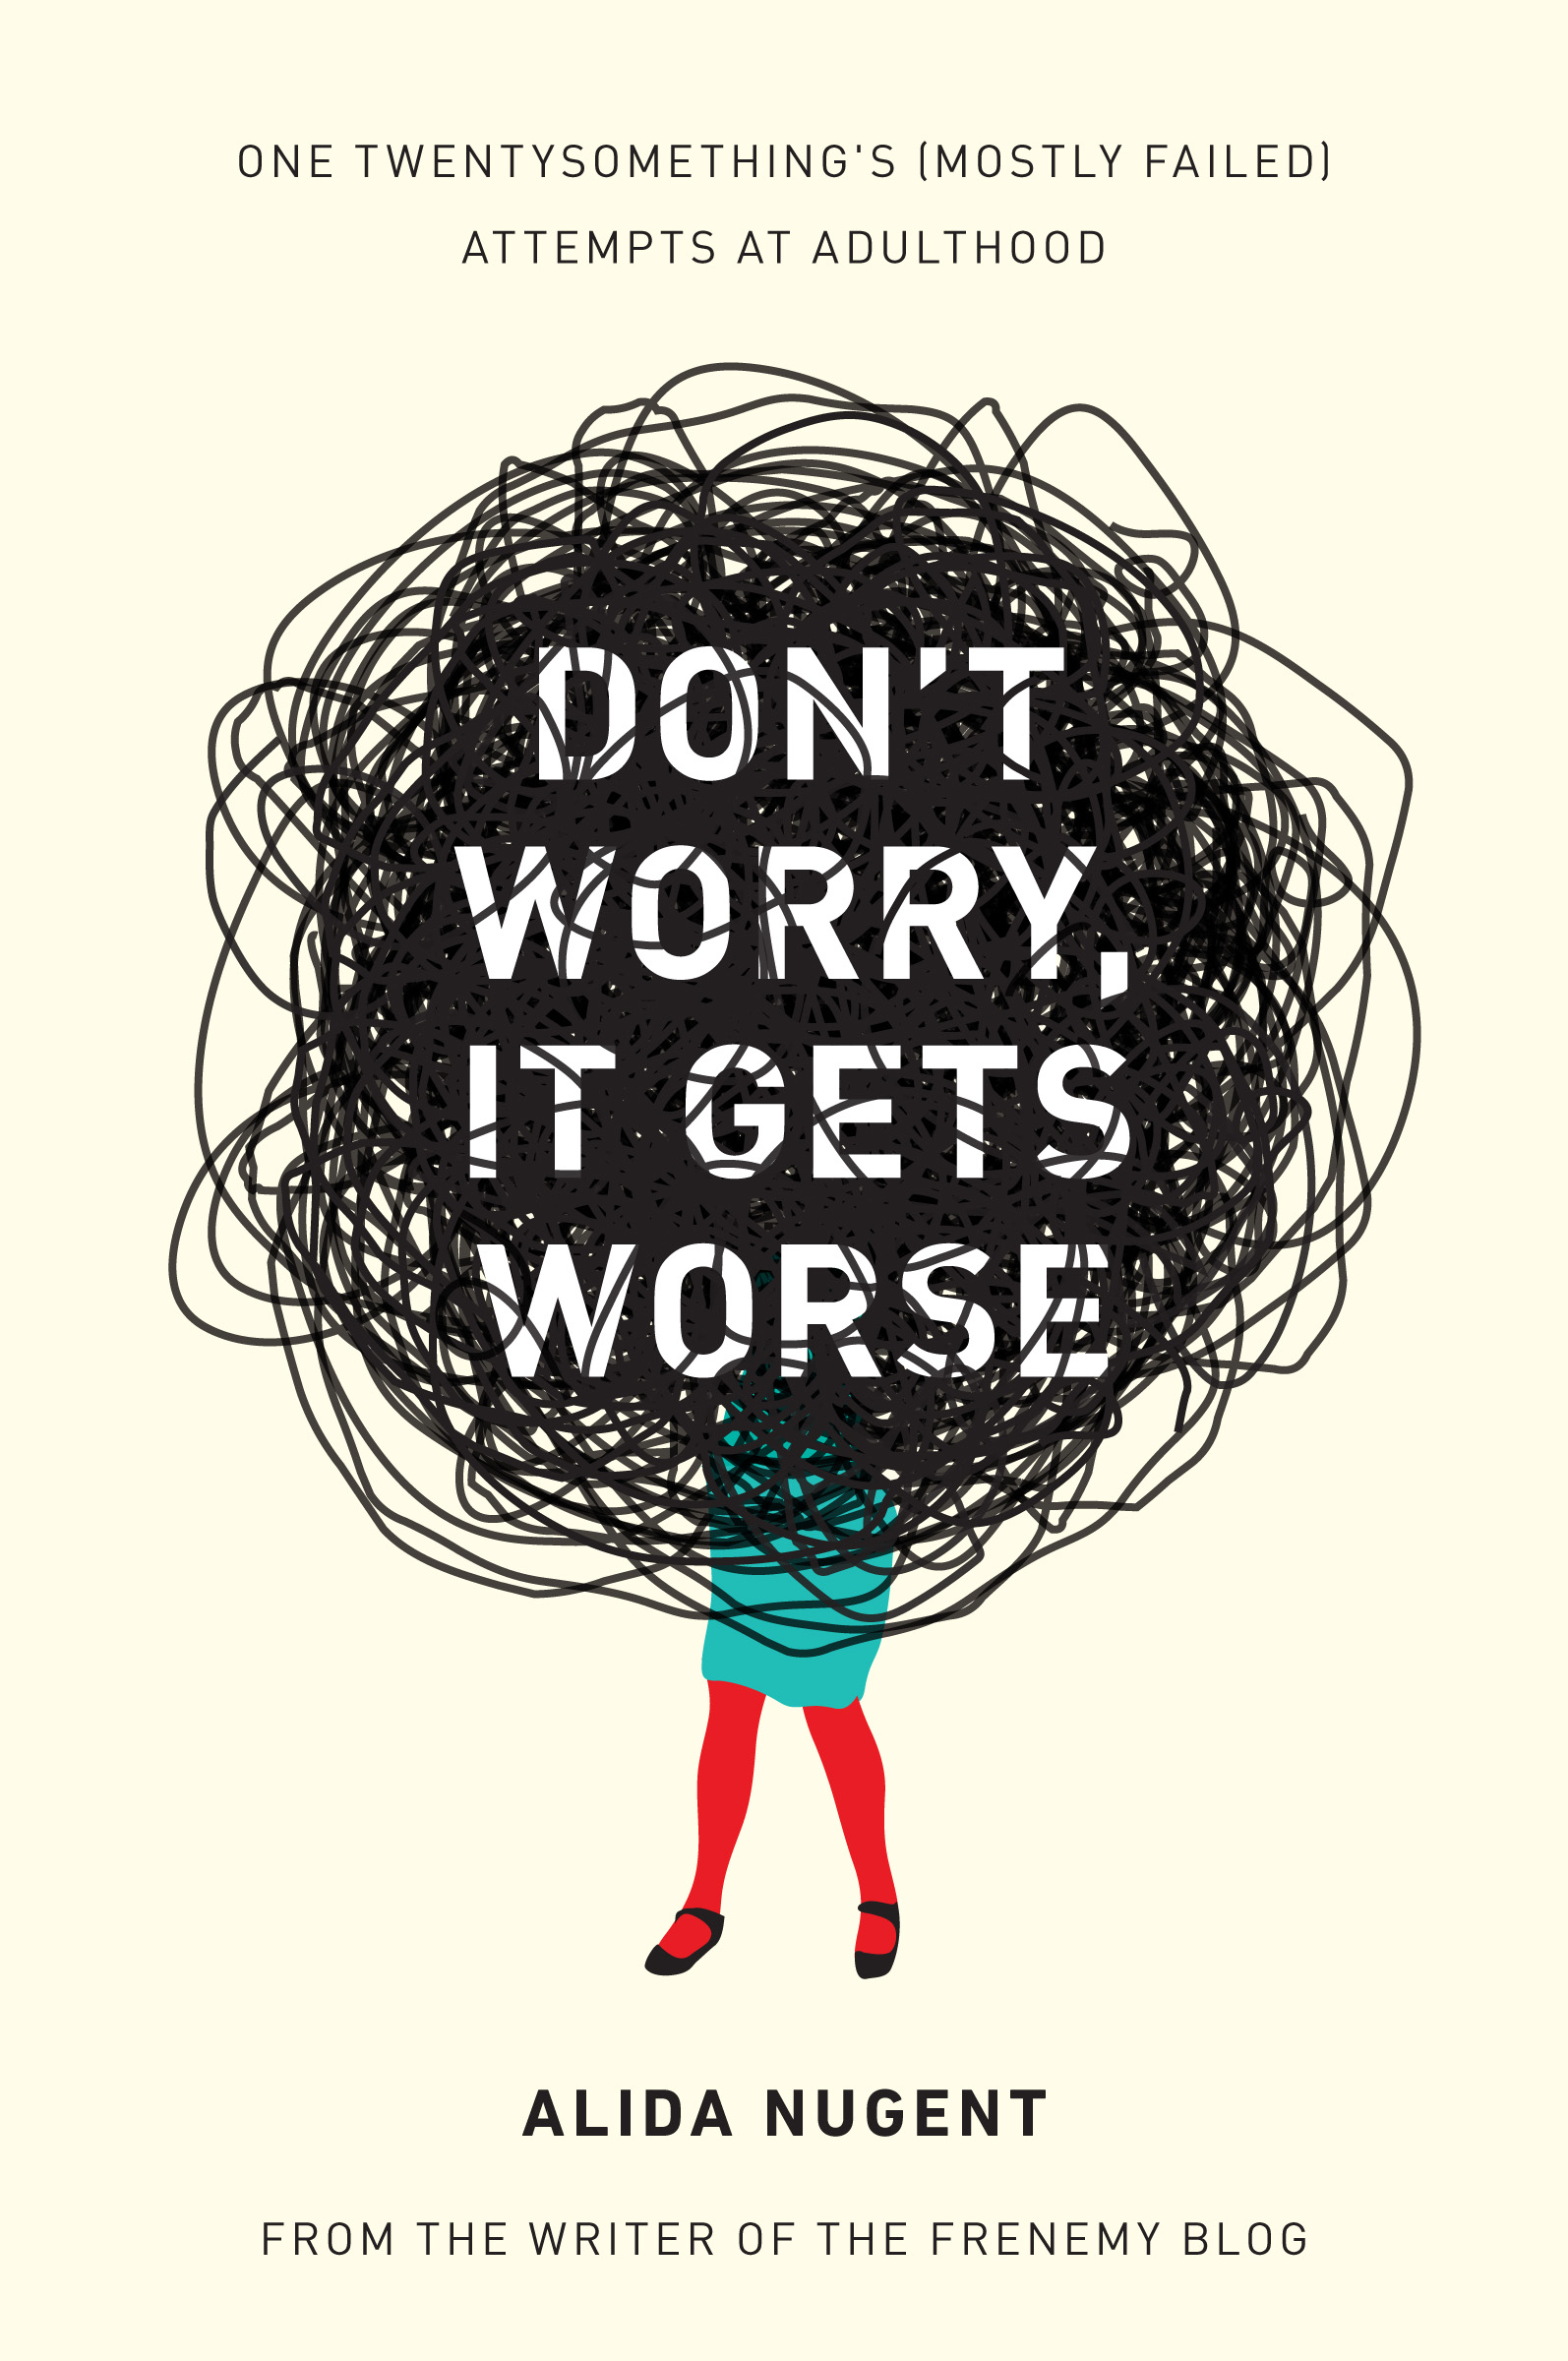 Book Launch: Don't Worry, It Gets Worse: One Twentysomething's (Mostly Failed) Attempts at Adulthood by Alida Nugent